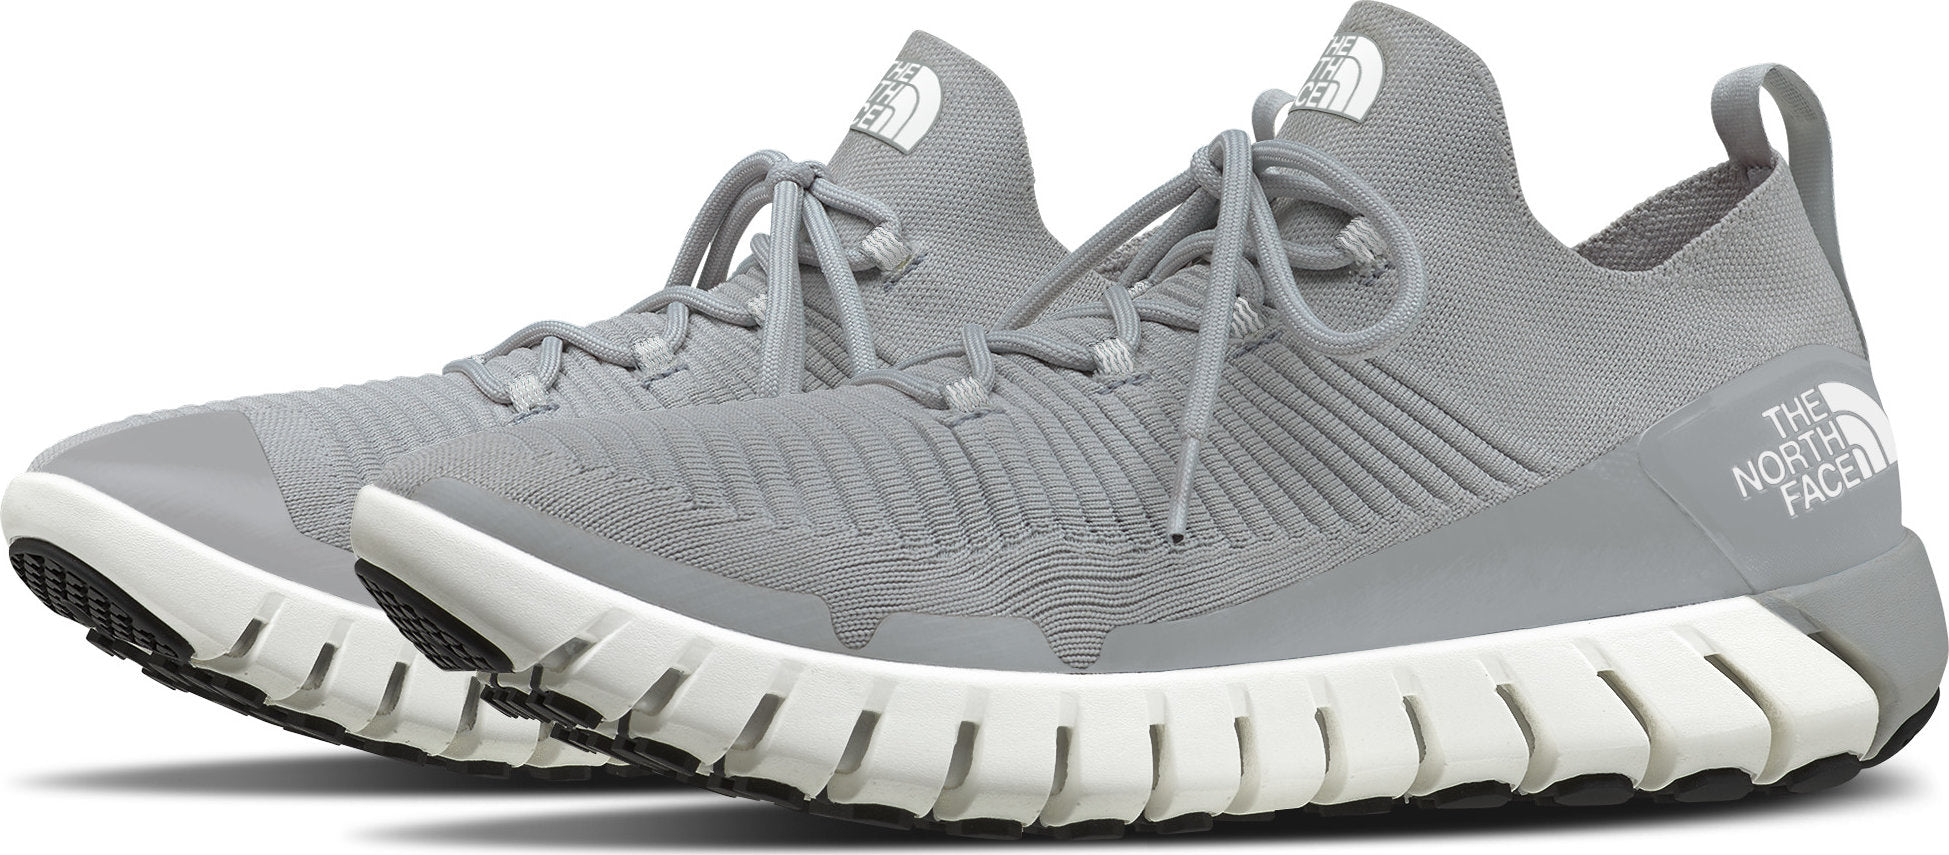 The North Face Oscilate Shoes - Women's